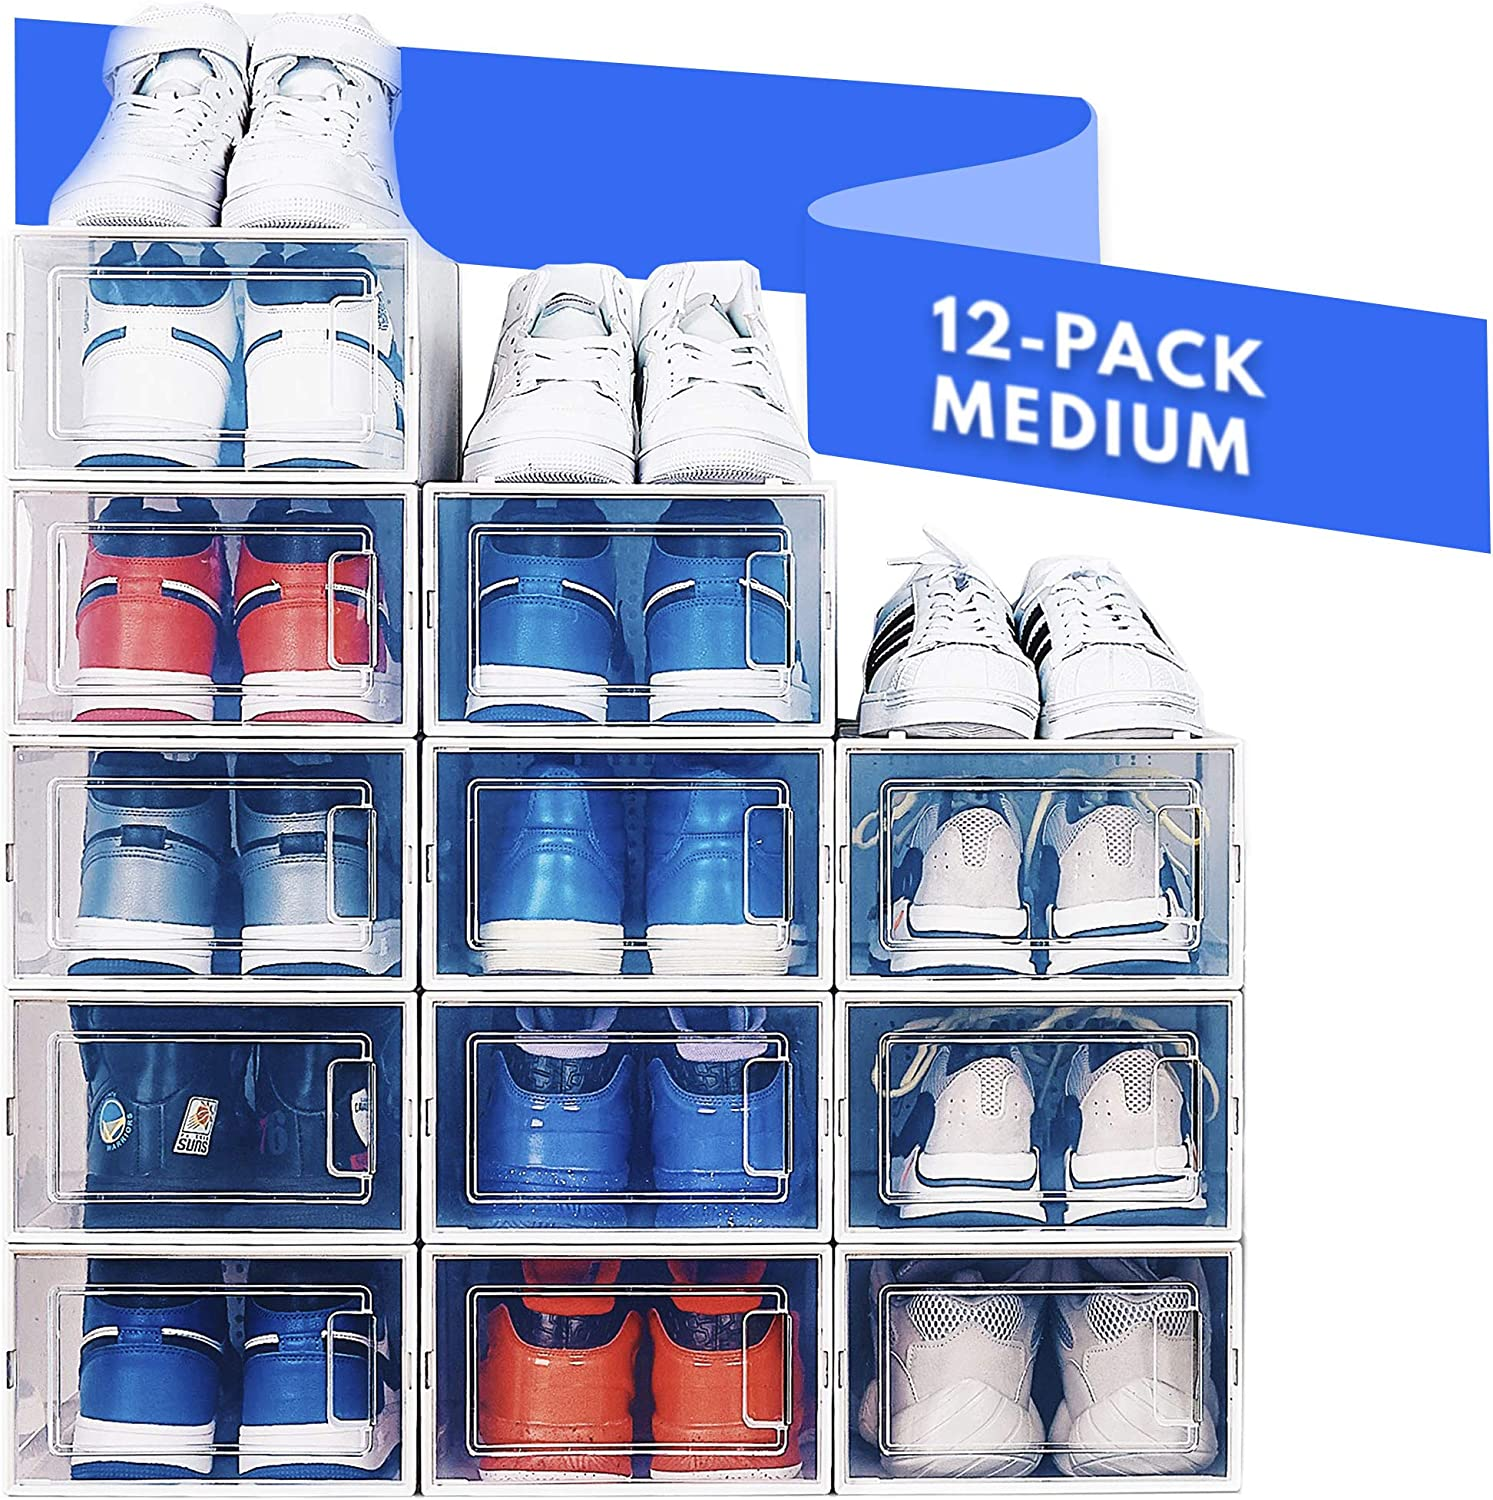 NEATLY Shoe Organizer for Closet - Stackable Shoe Storage, Shoe Rack for Entryway - Clear Plastic Shoe Boxes, Sneaker Shoe Container, Shoe Rack for Closet, Under Bed Shoe Storage (12-pack)